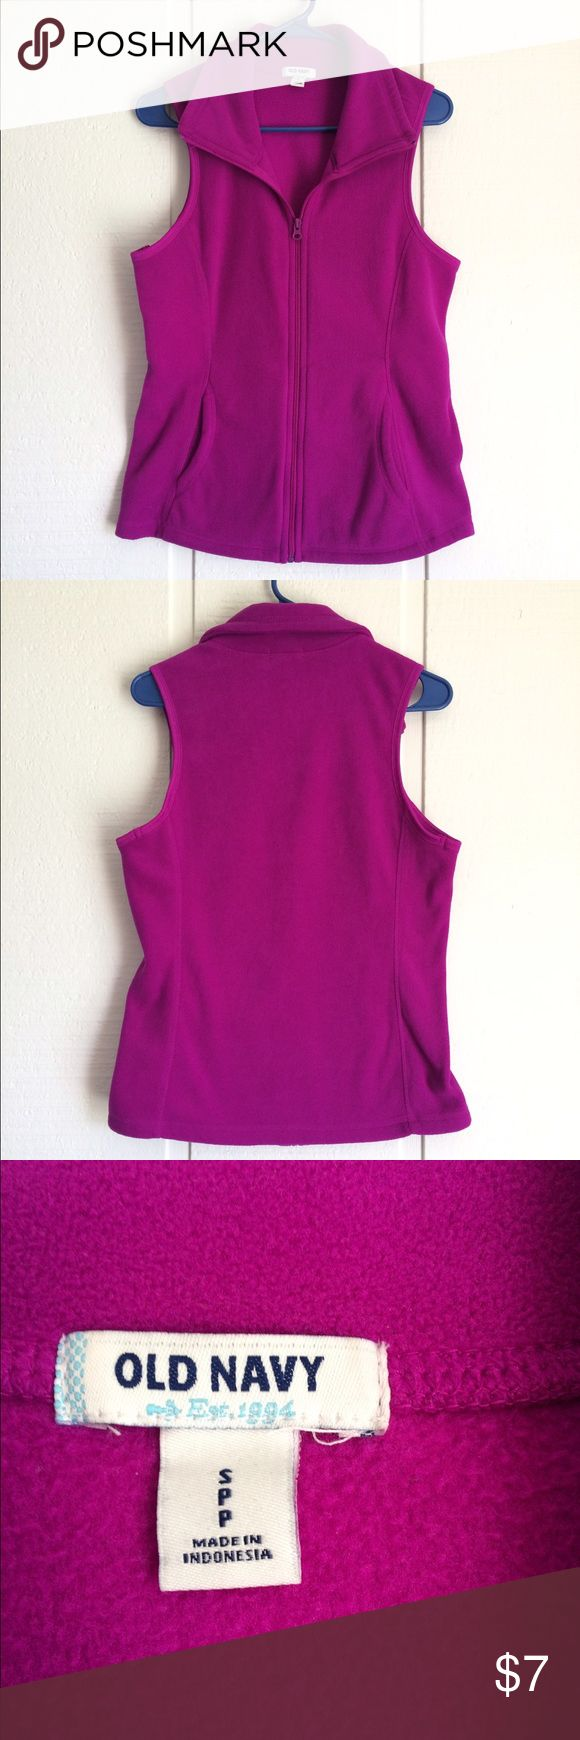 Old Navy Fleece Vest This bright purple vest is a super fun accessory! Adds a layer of warmth and a pop of color. Great condition! Old Navy Jackets & Coats Vests